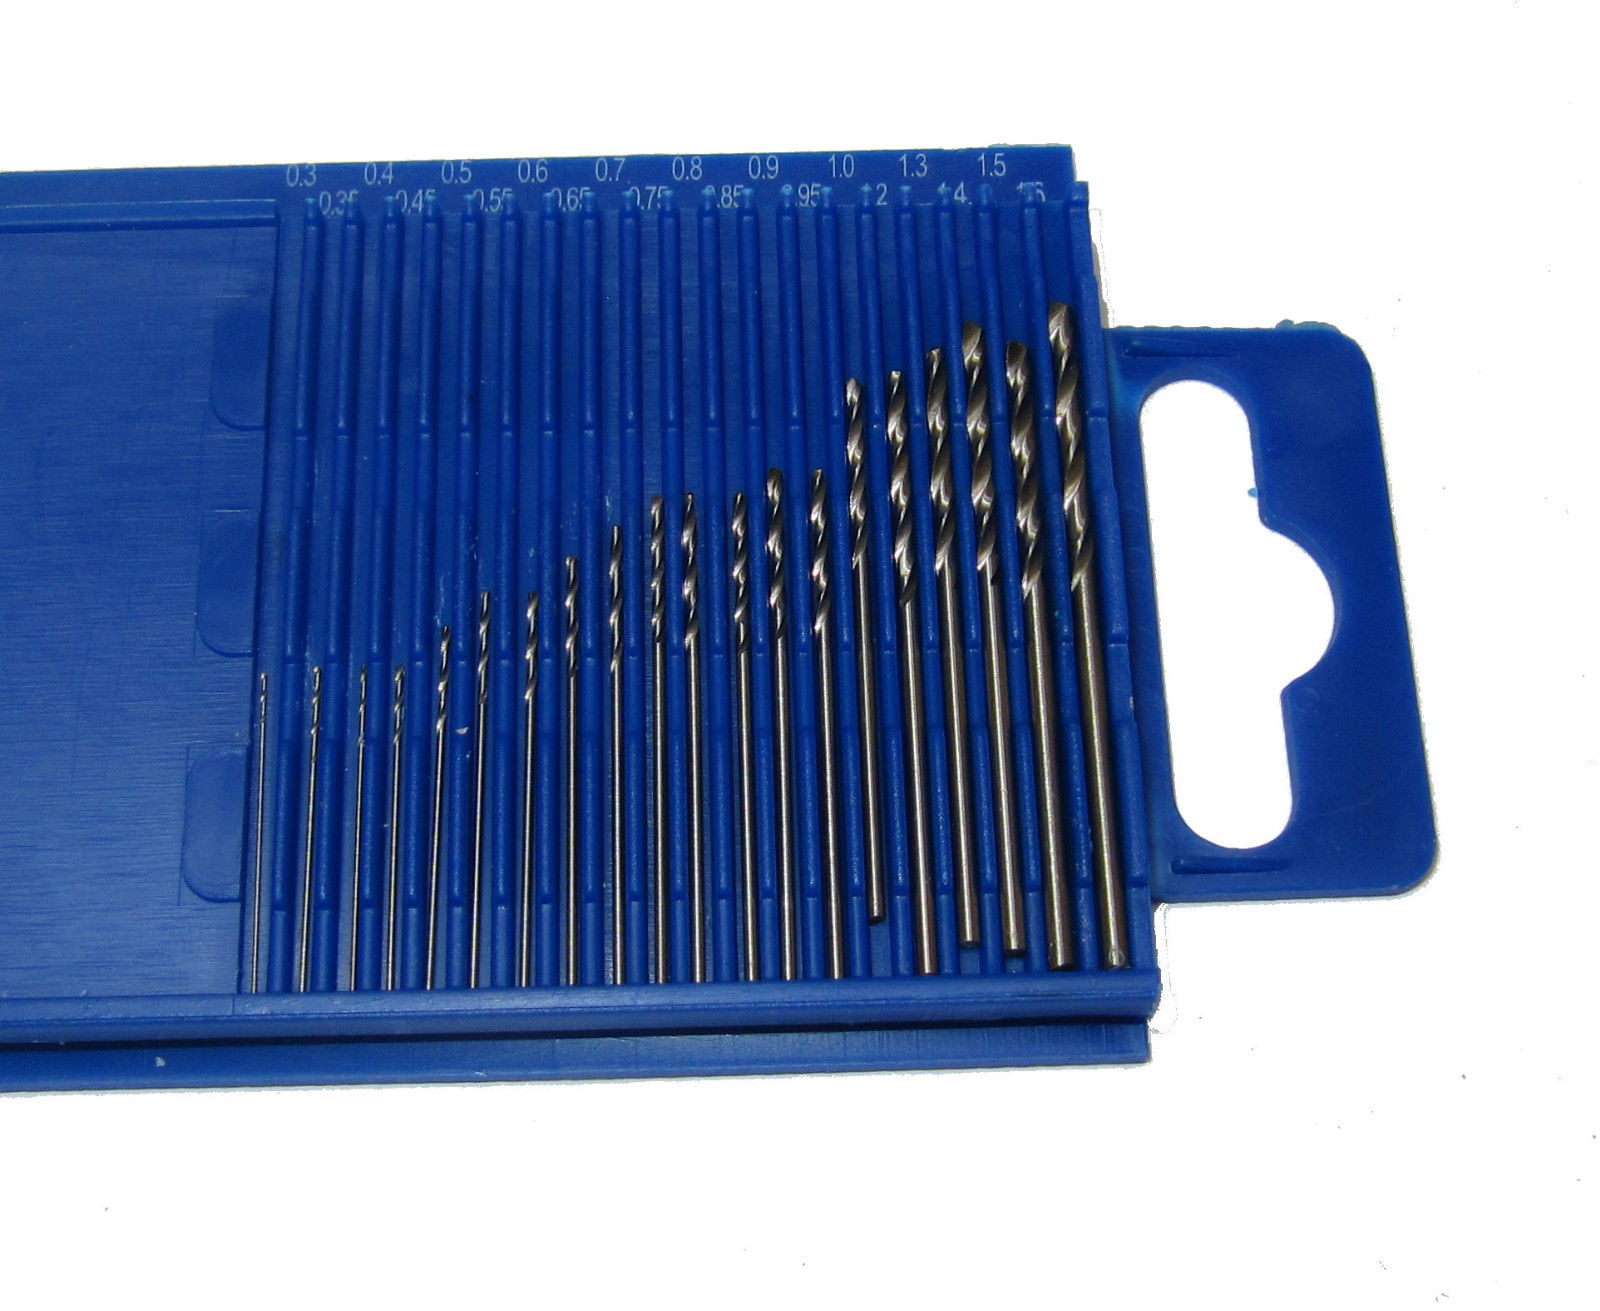 Model engineering and engineering tools online from rdg tools ltd 03mm 16mm drill set greentooth Choice Image